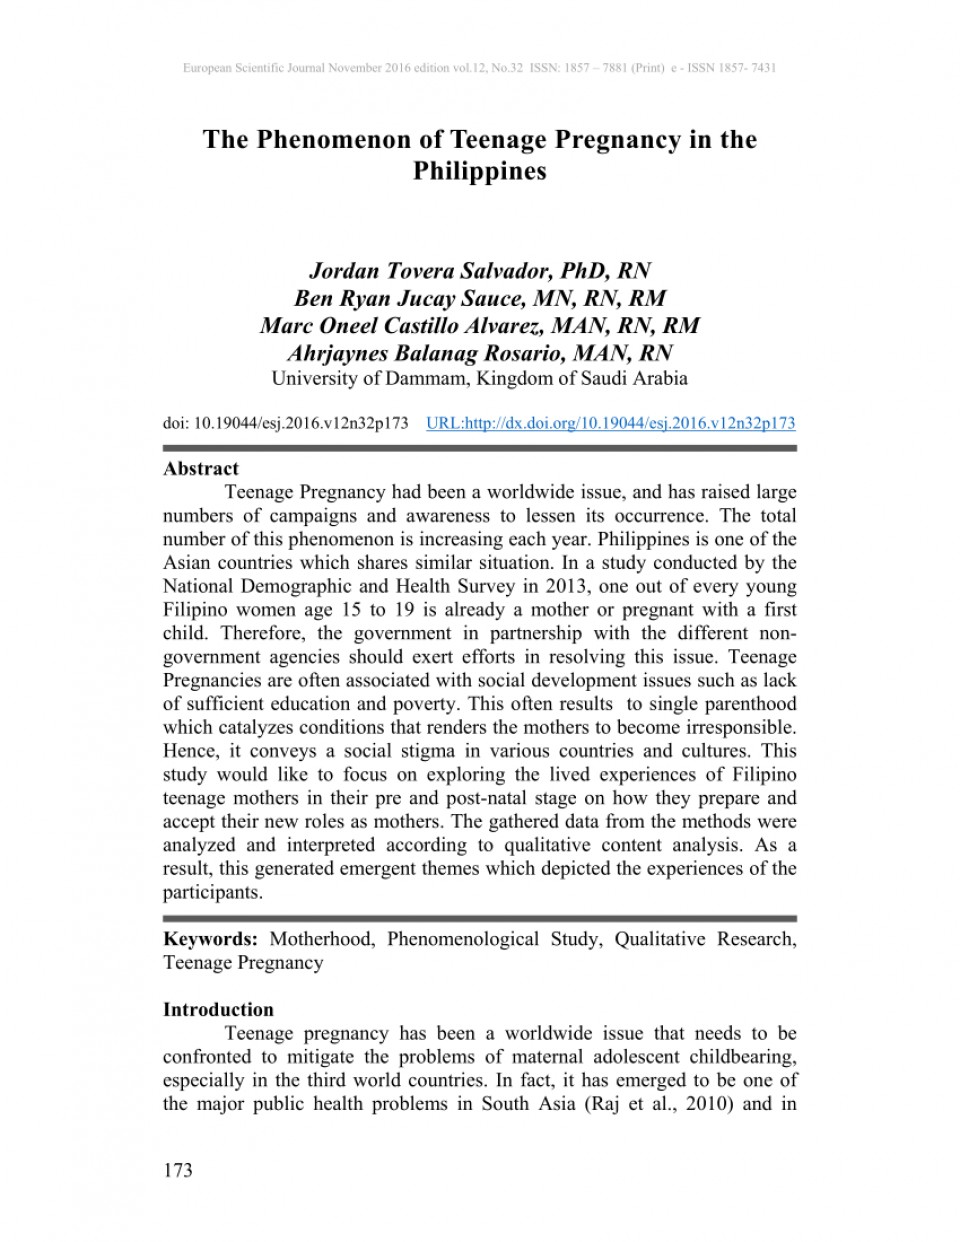 001 Introduction Of Research Paper About Teenage Pregnancy In The Philippines Wondrous A 960